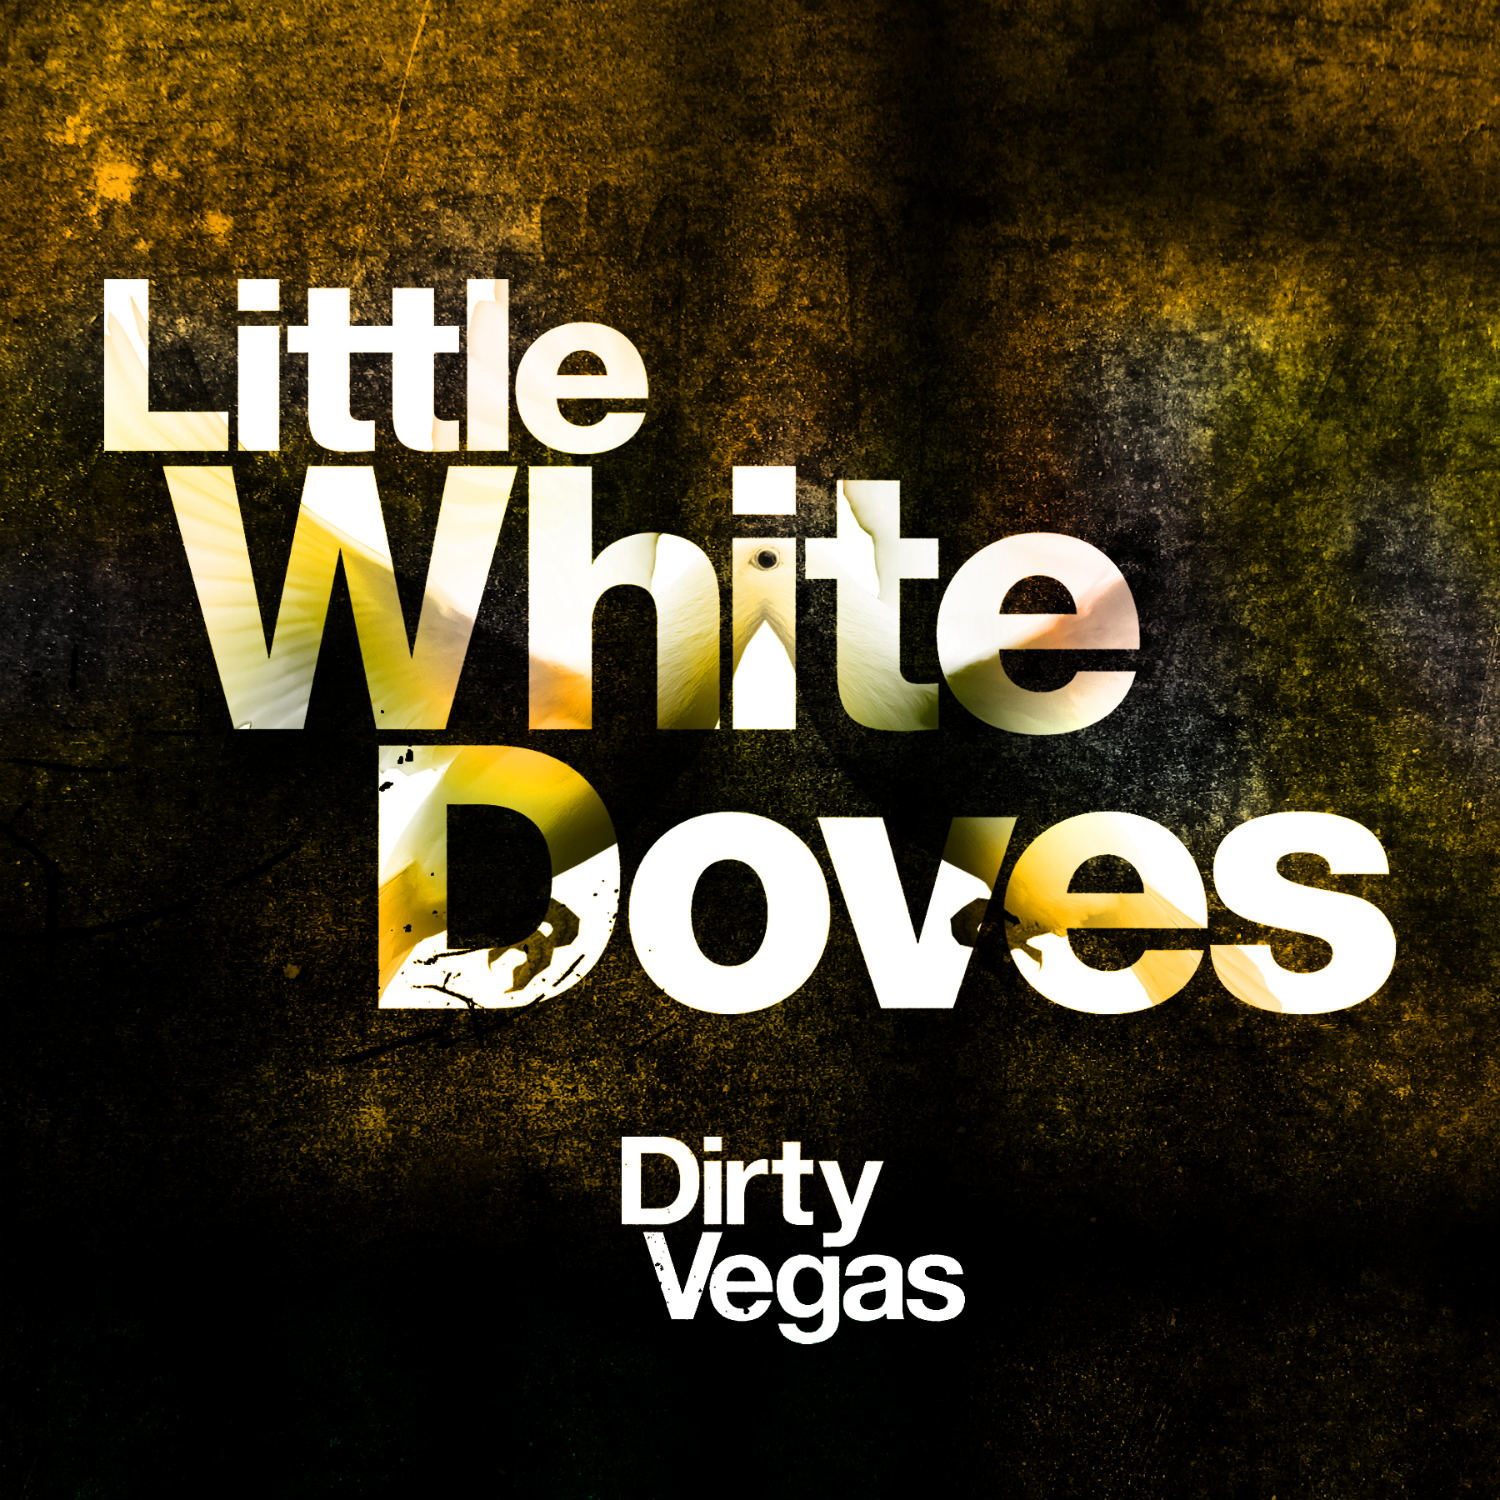 Dirty Vegas - Little White Doves Pt. 2